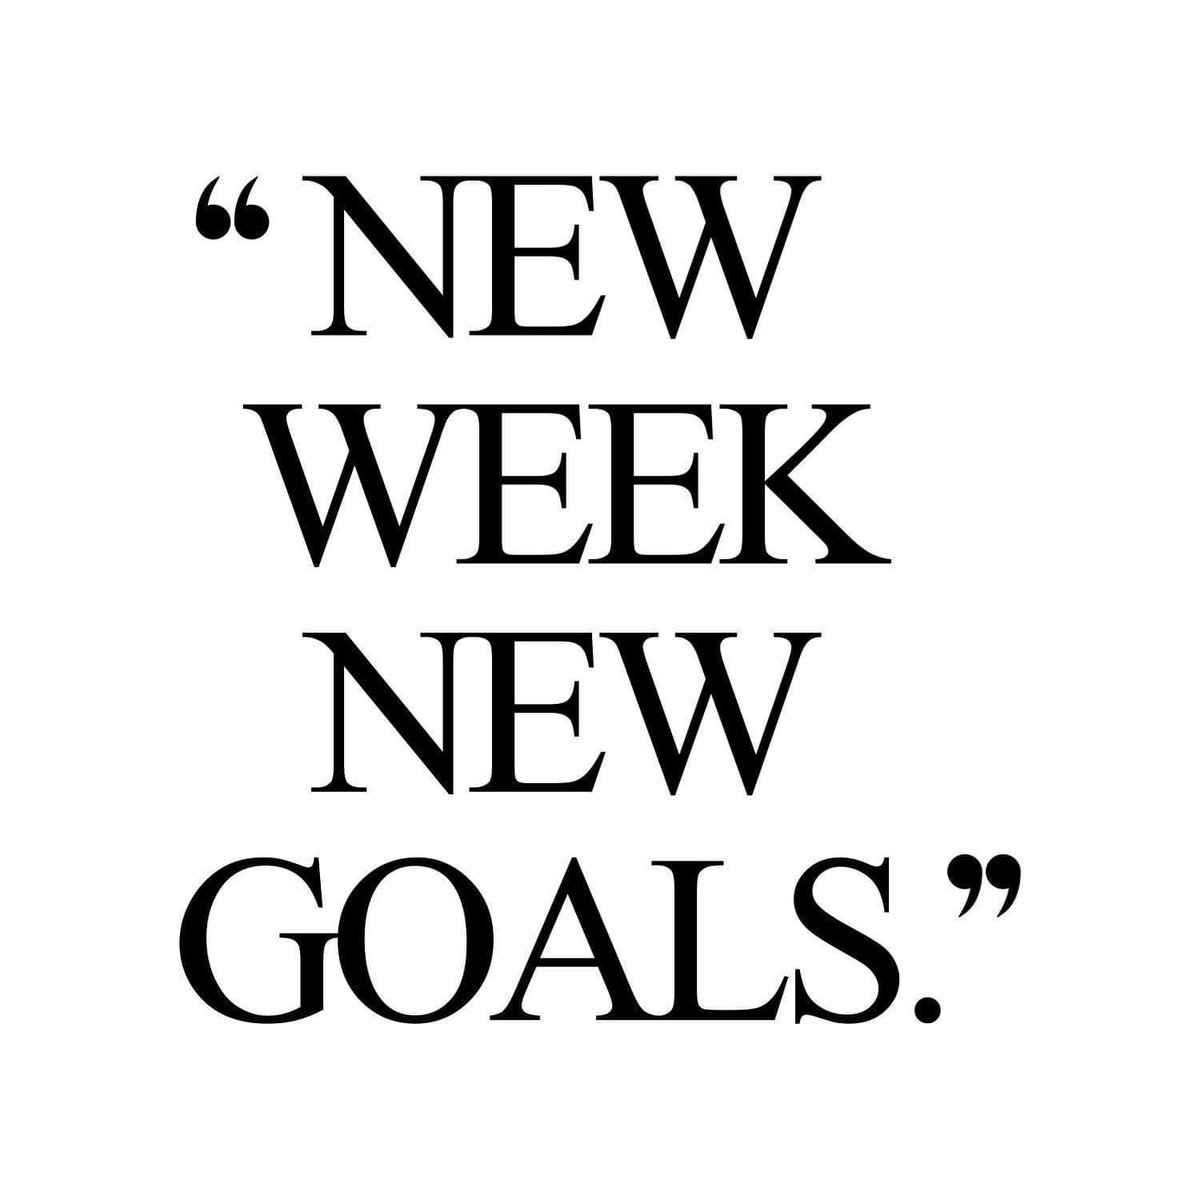 Start of another footballing week for all at @southashfordfc  Looking forward to seeing what's in store   #safc #football #newweek #newgoals #followback #followforfollowback #f4follow #sunsout #sunnyday #goals #mondaypic.twitter.com/Wzrxb81szv